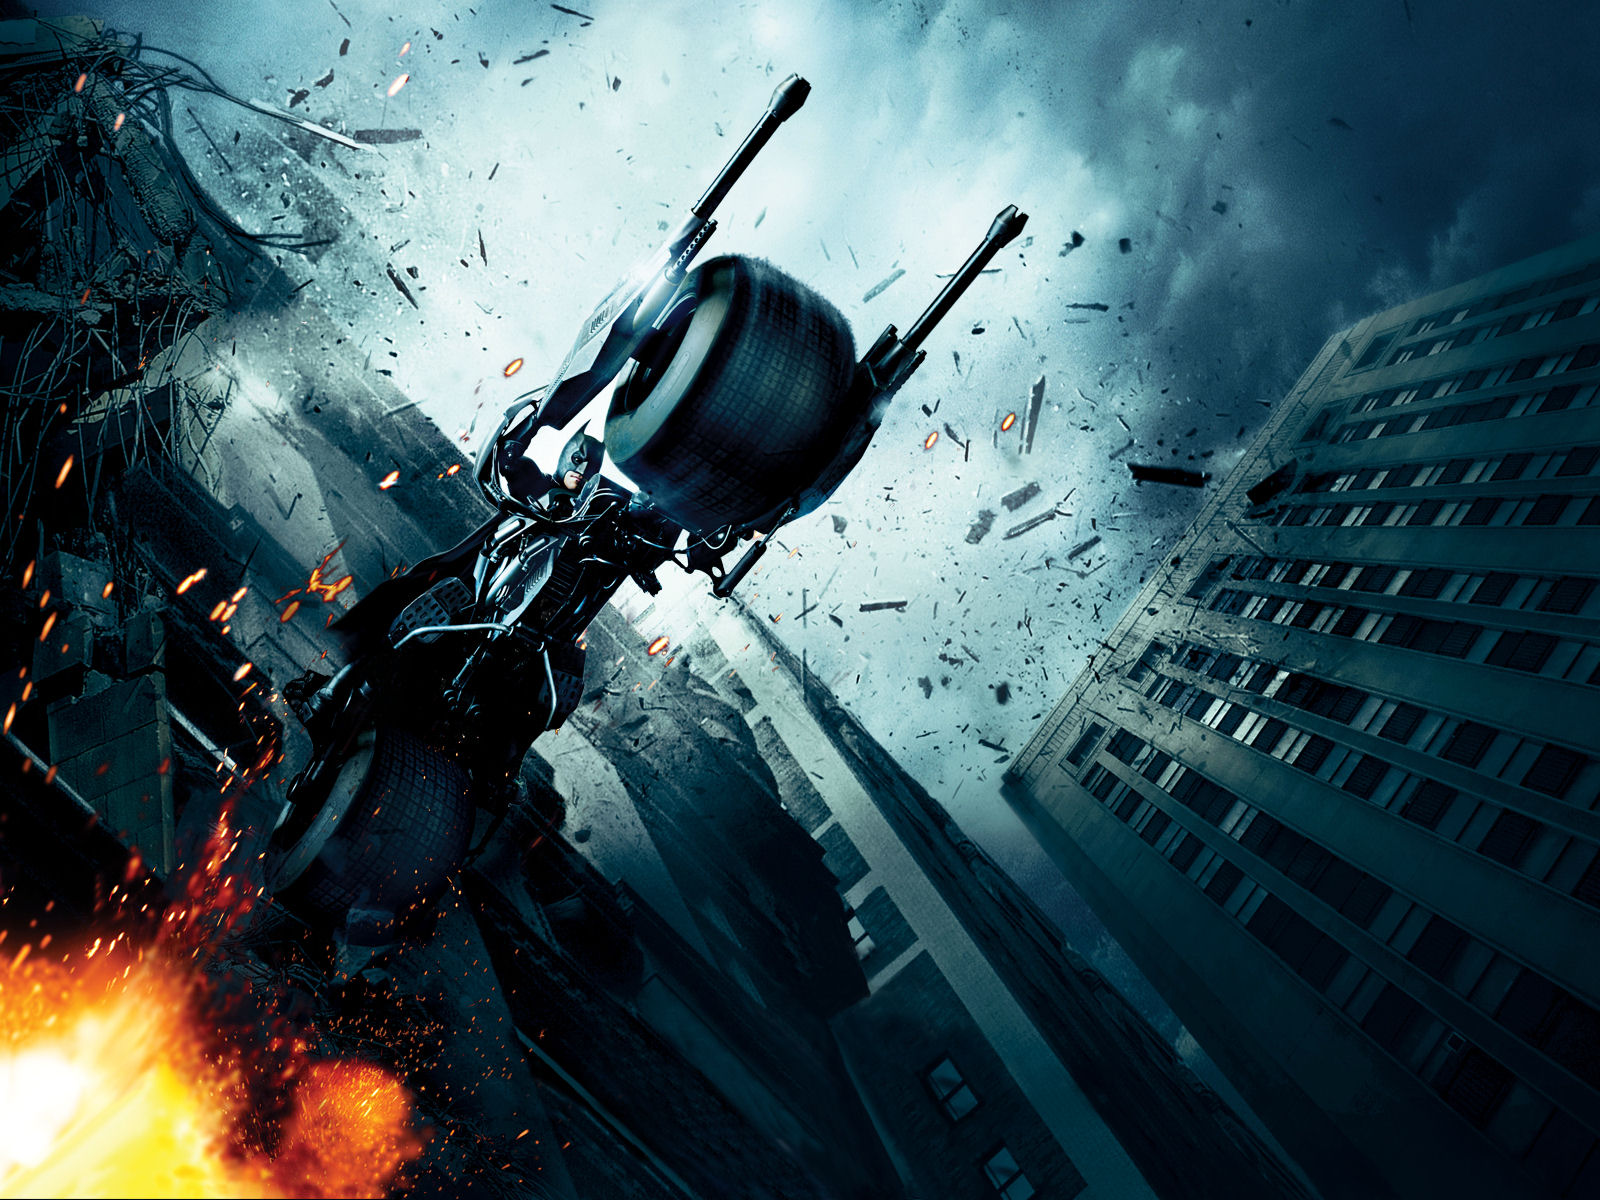 Batman Christian Bale Batmobile Batman The Dark Knight Batpod 1600x1200